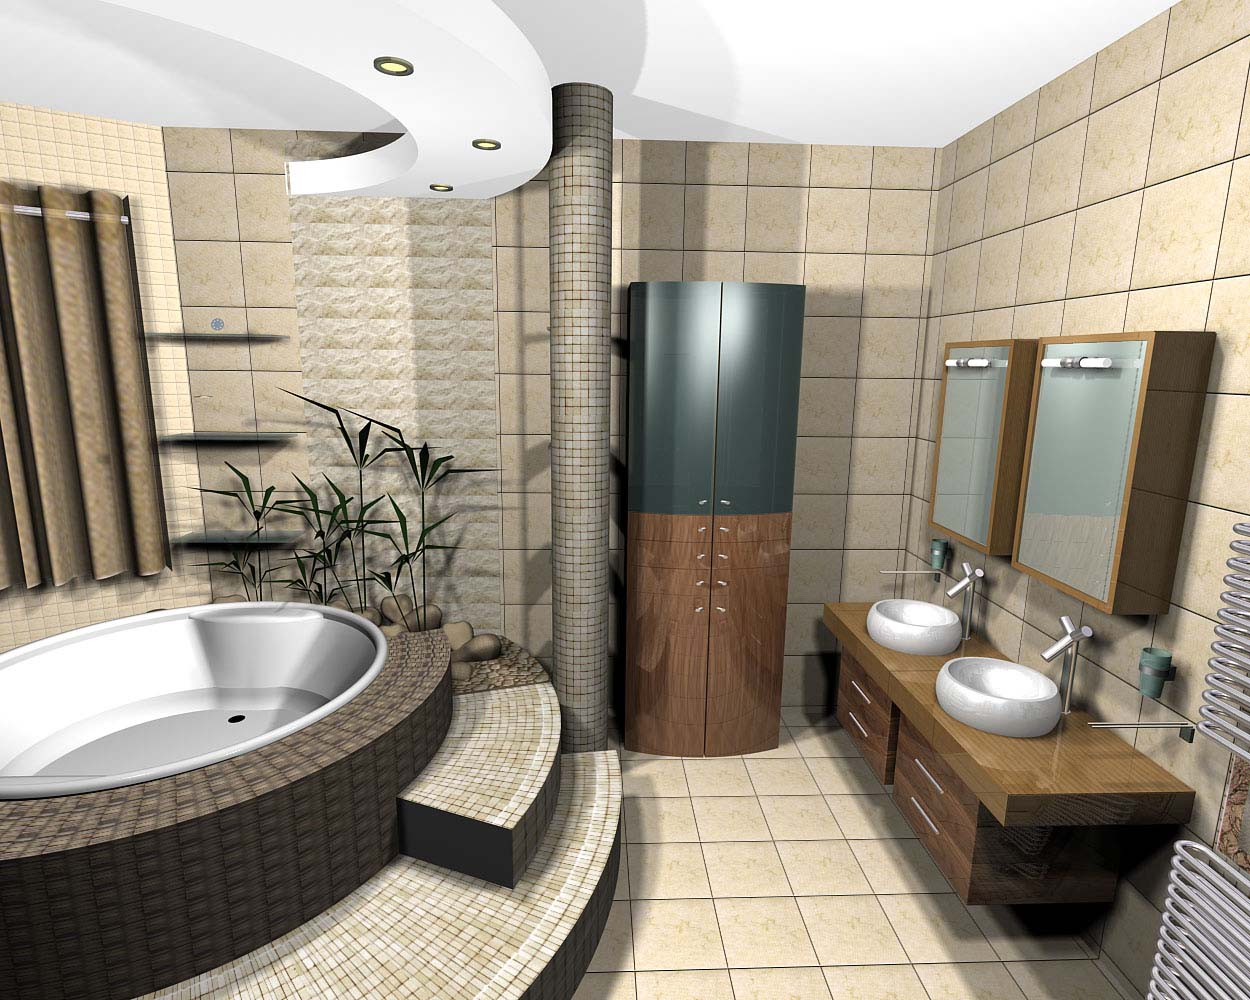 Design For Bathrooms - Home Design Ideas